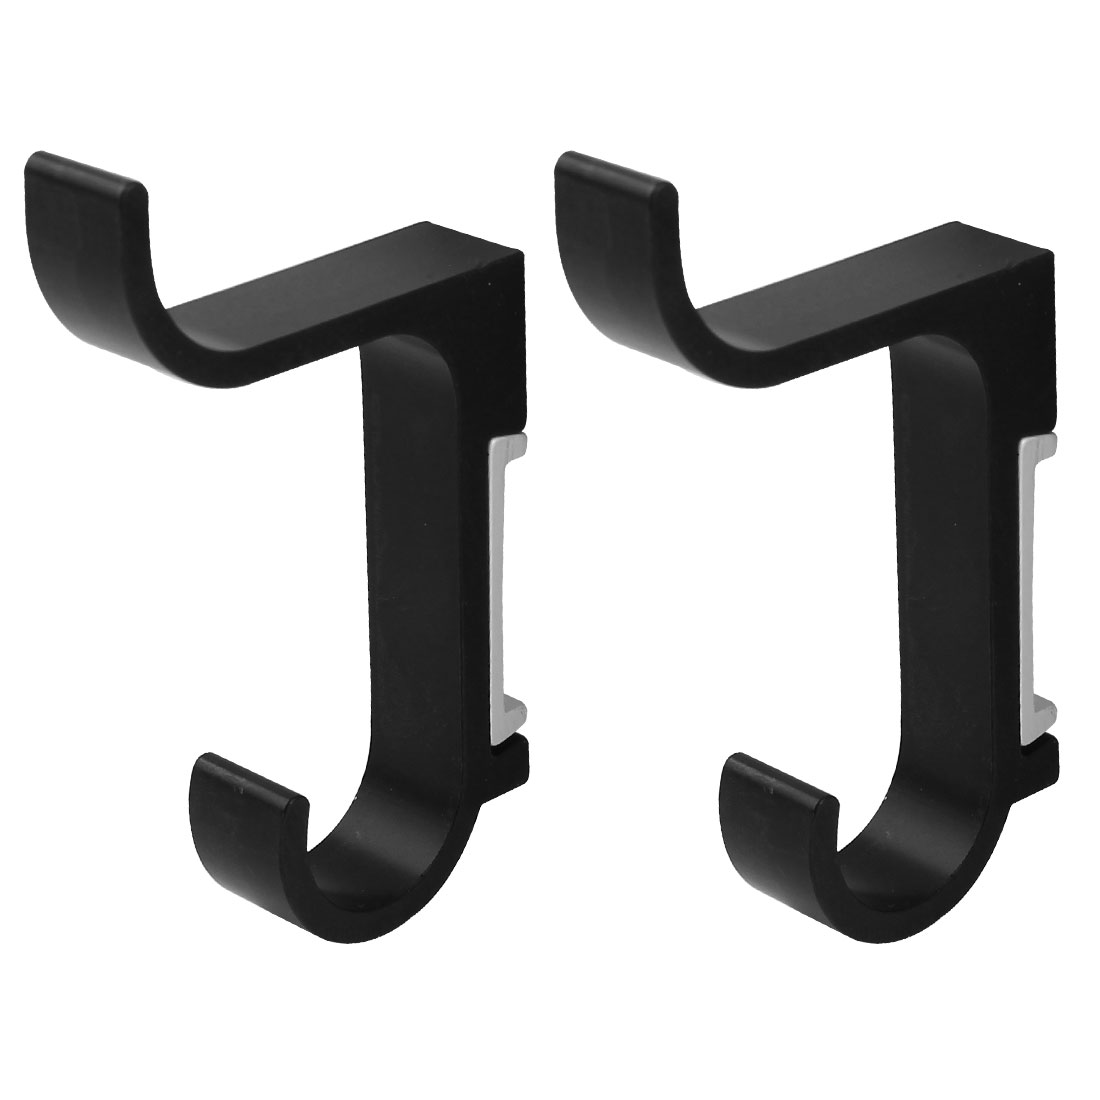 2 Pieces Aluminum Wall Mount Bathroom Towel Holder Robe Hooks Hangers Black 85mm